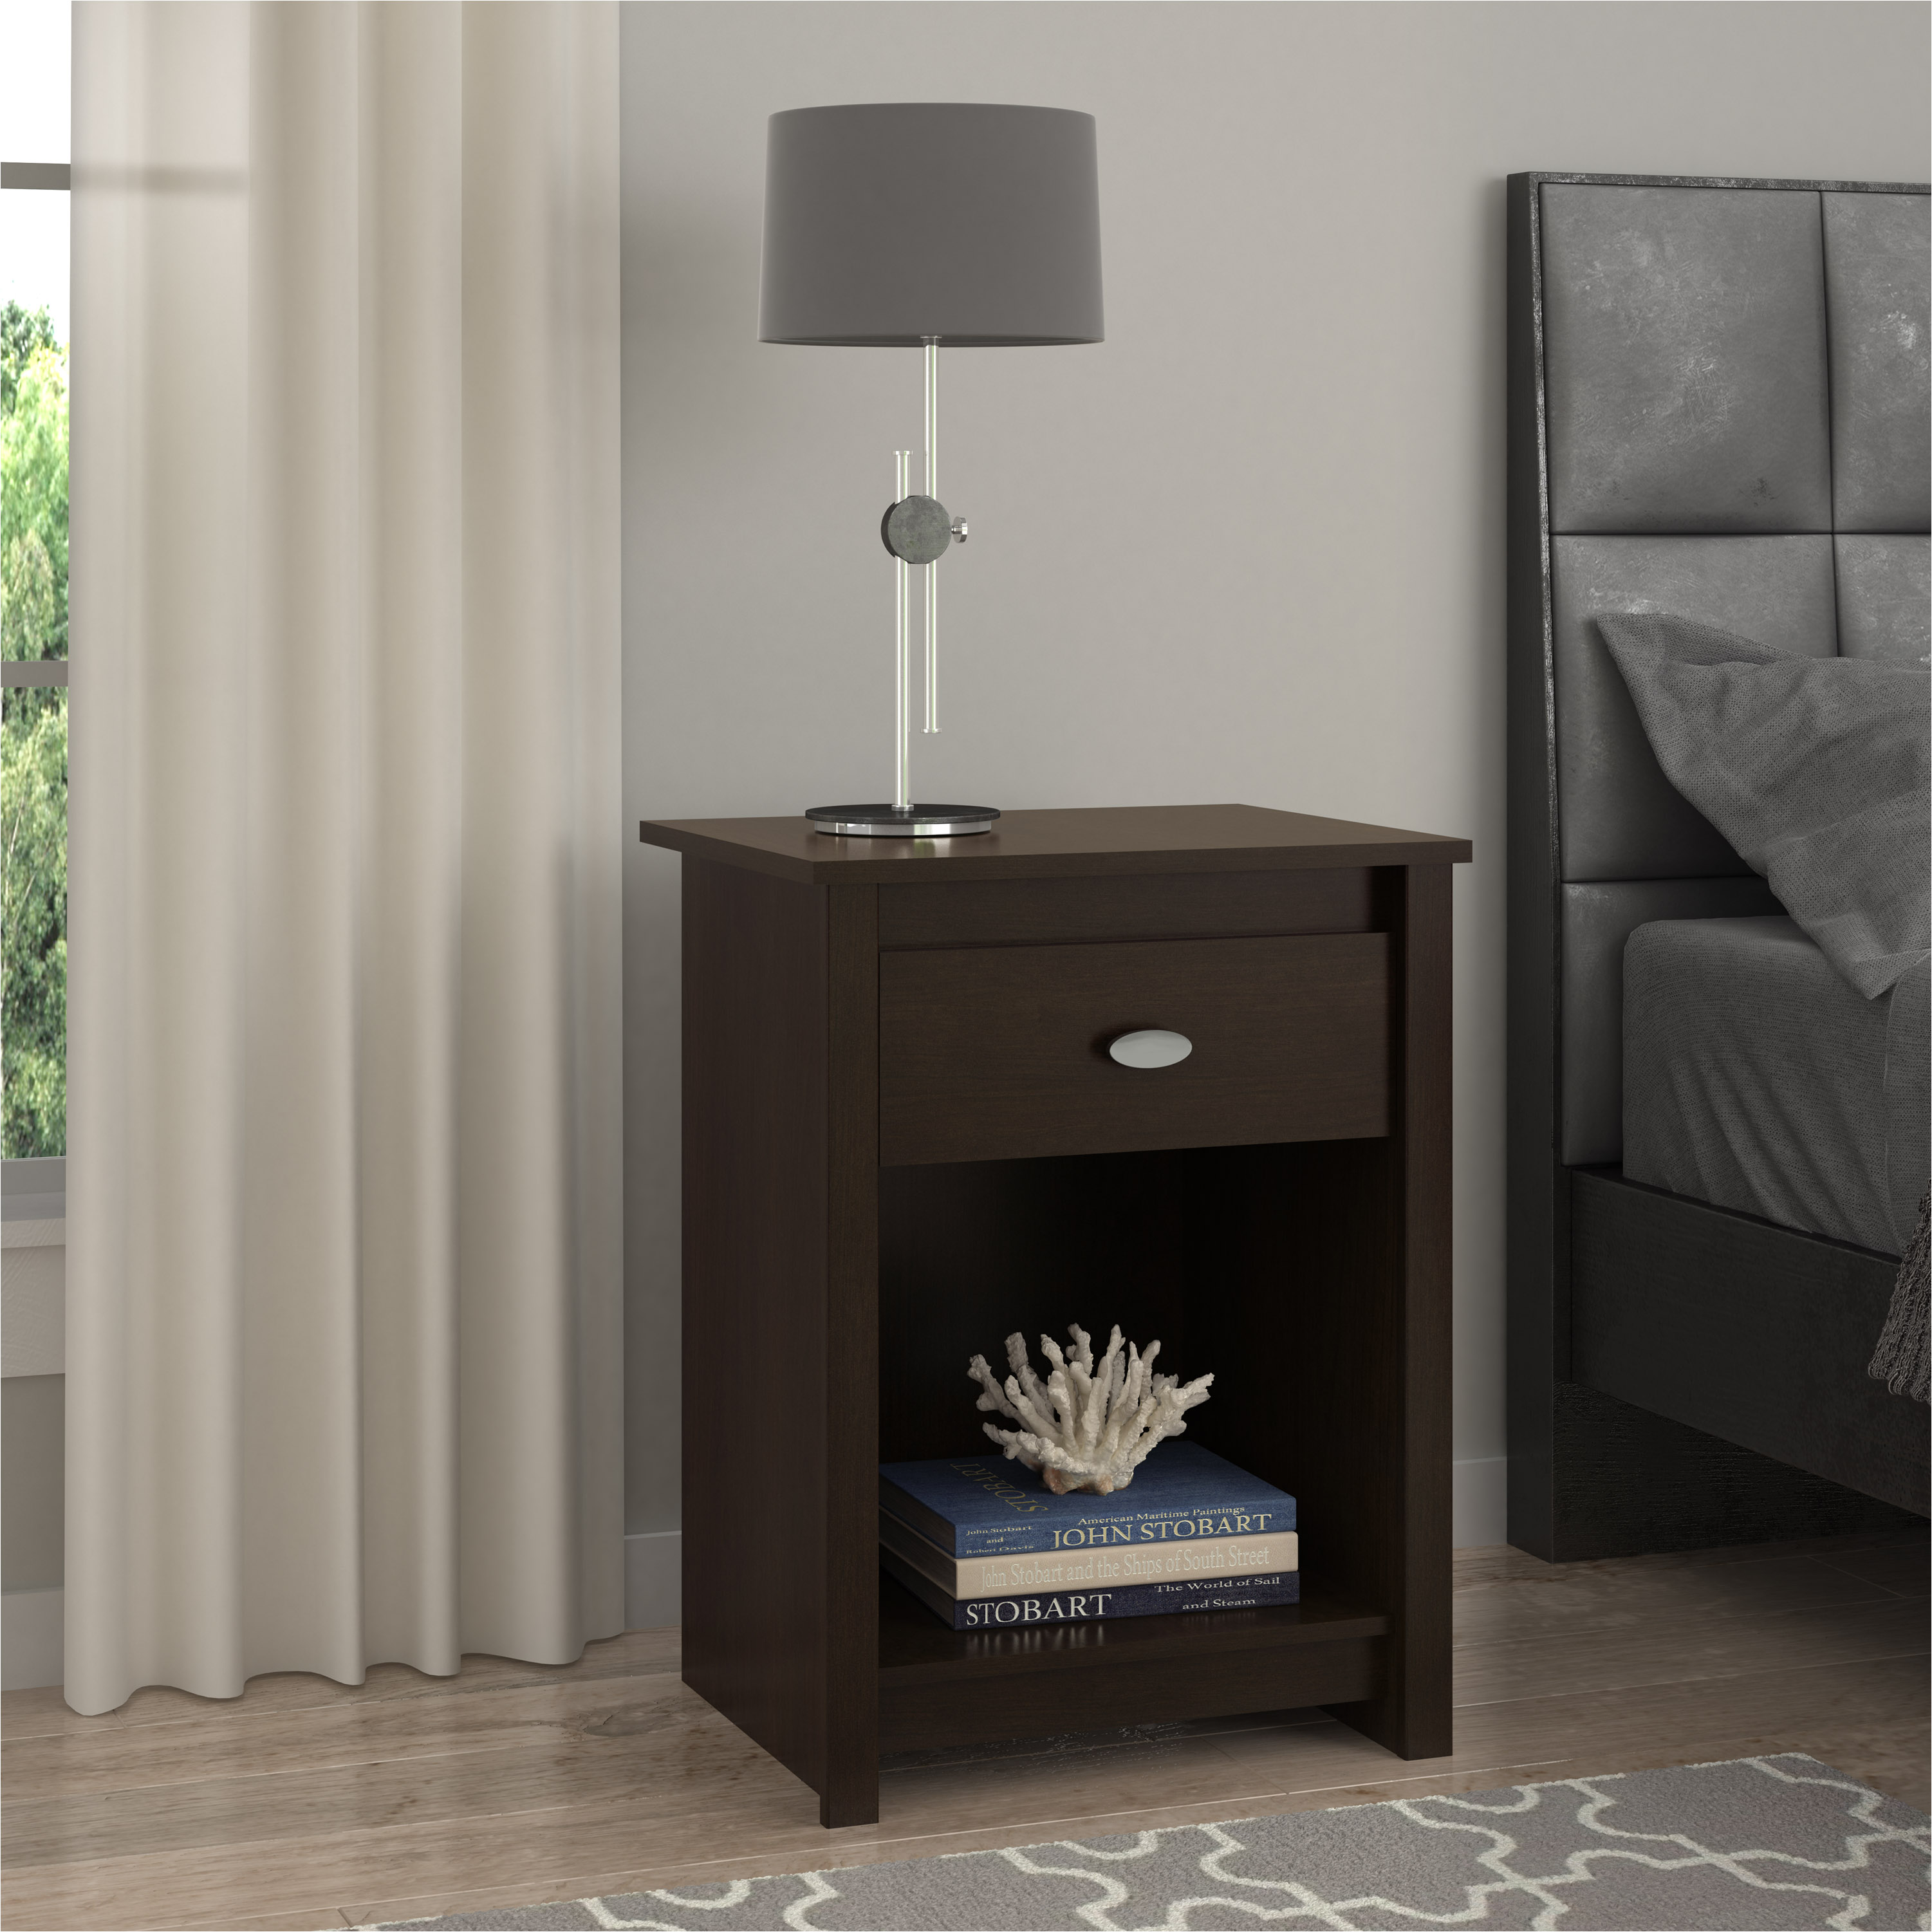 Essential Home Essential Home Anderson Bedroom Furniture